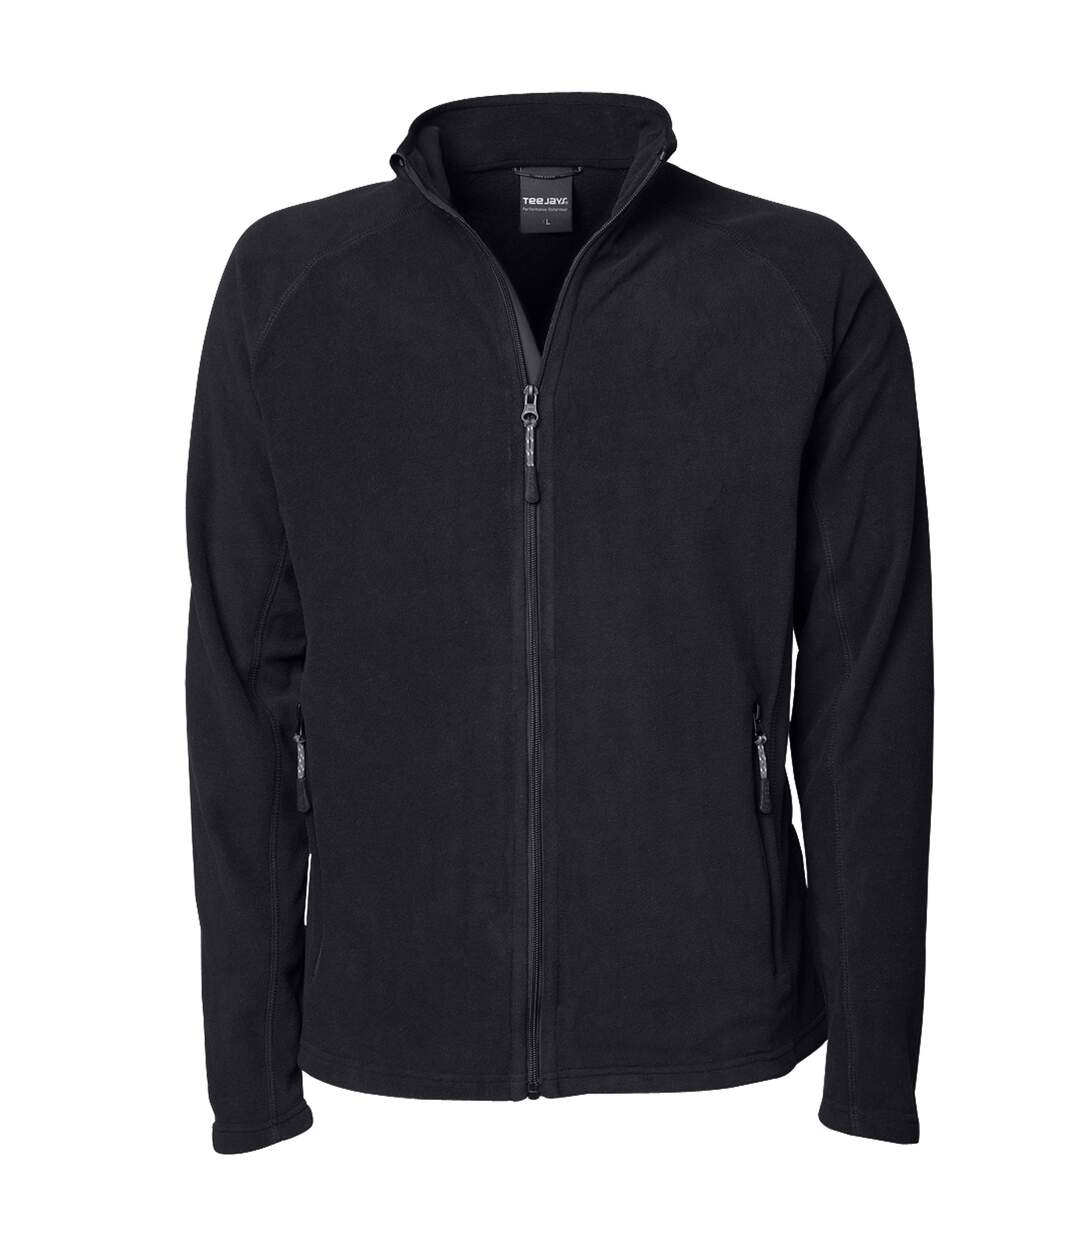 Tee Jays Mens Full Zip Active Lightweight Fleece Jacket (Dark Grey) - UTBC3362